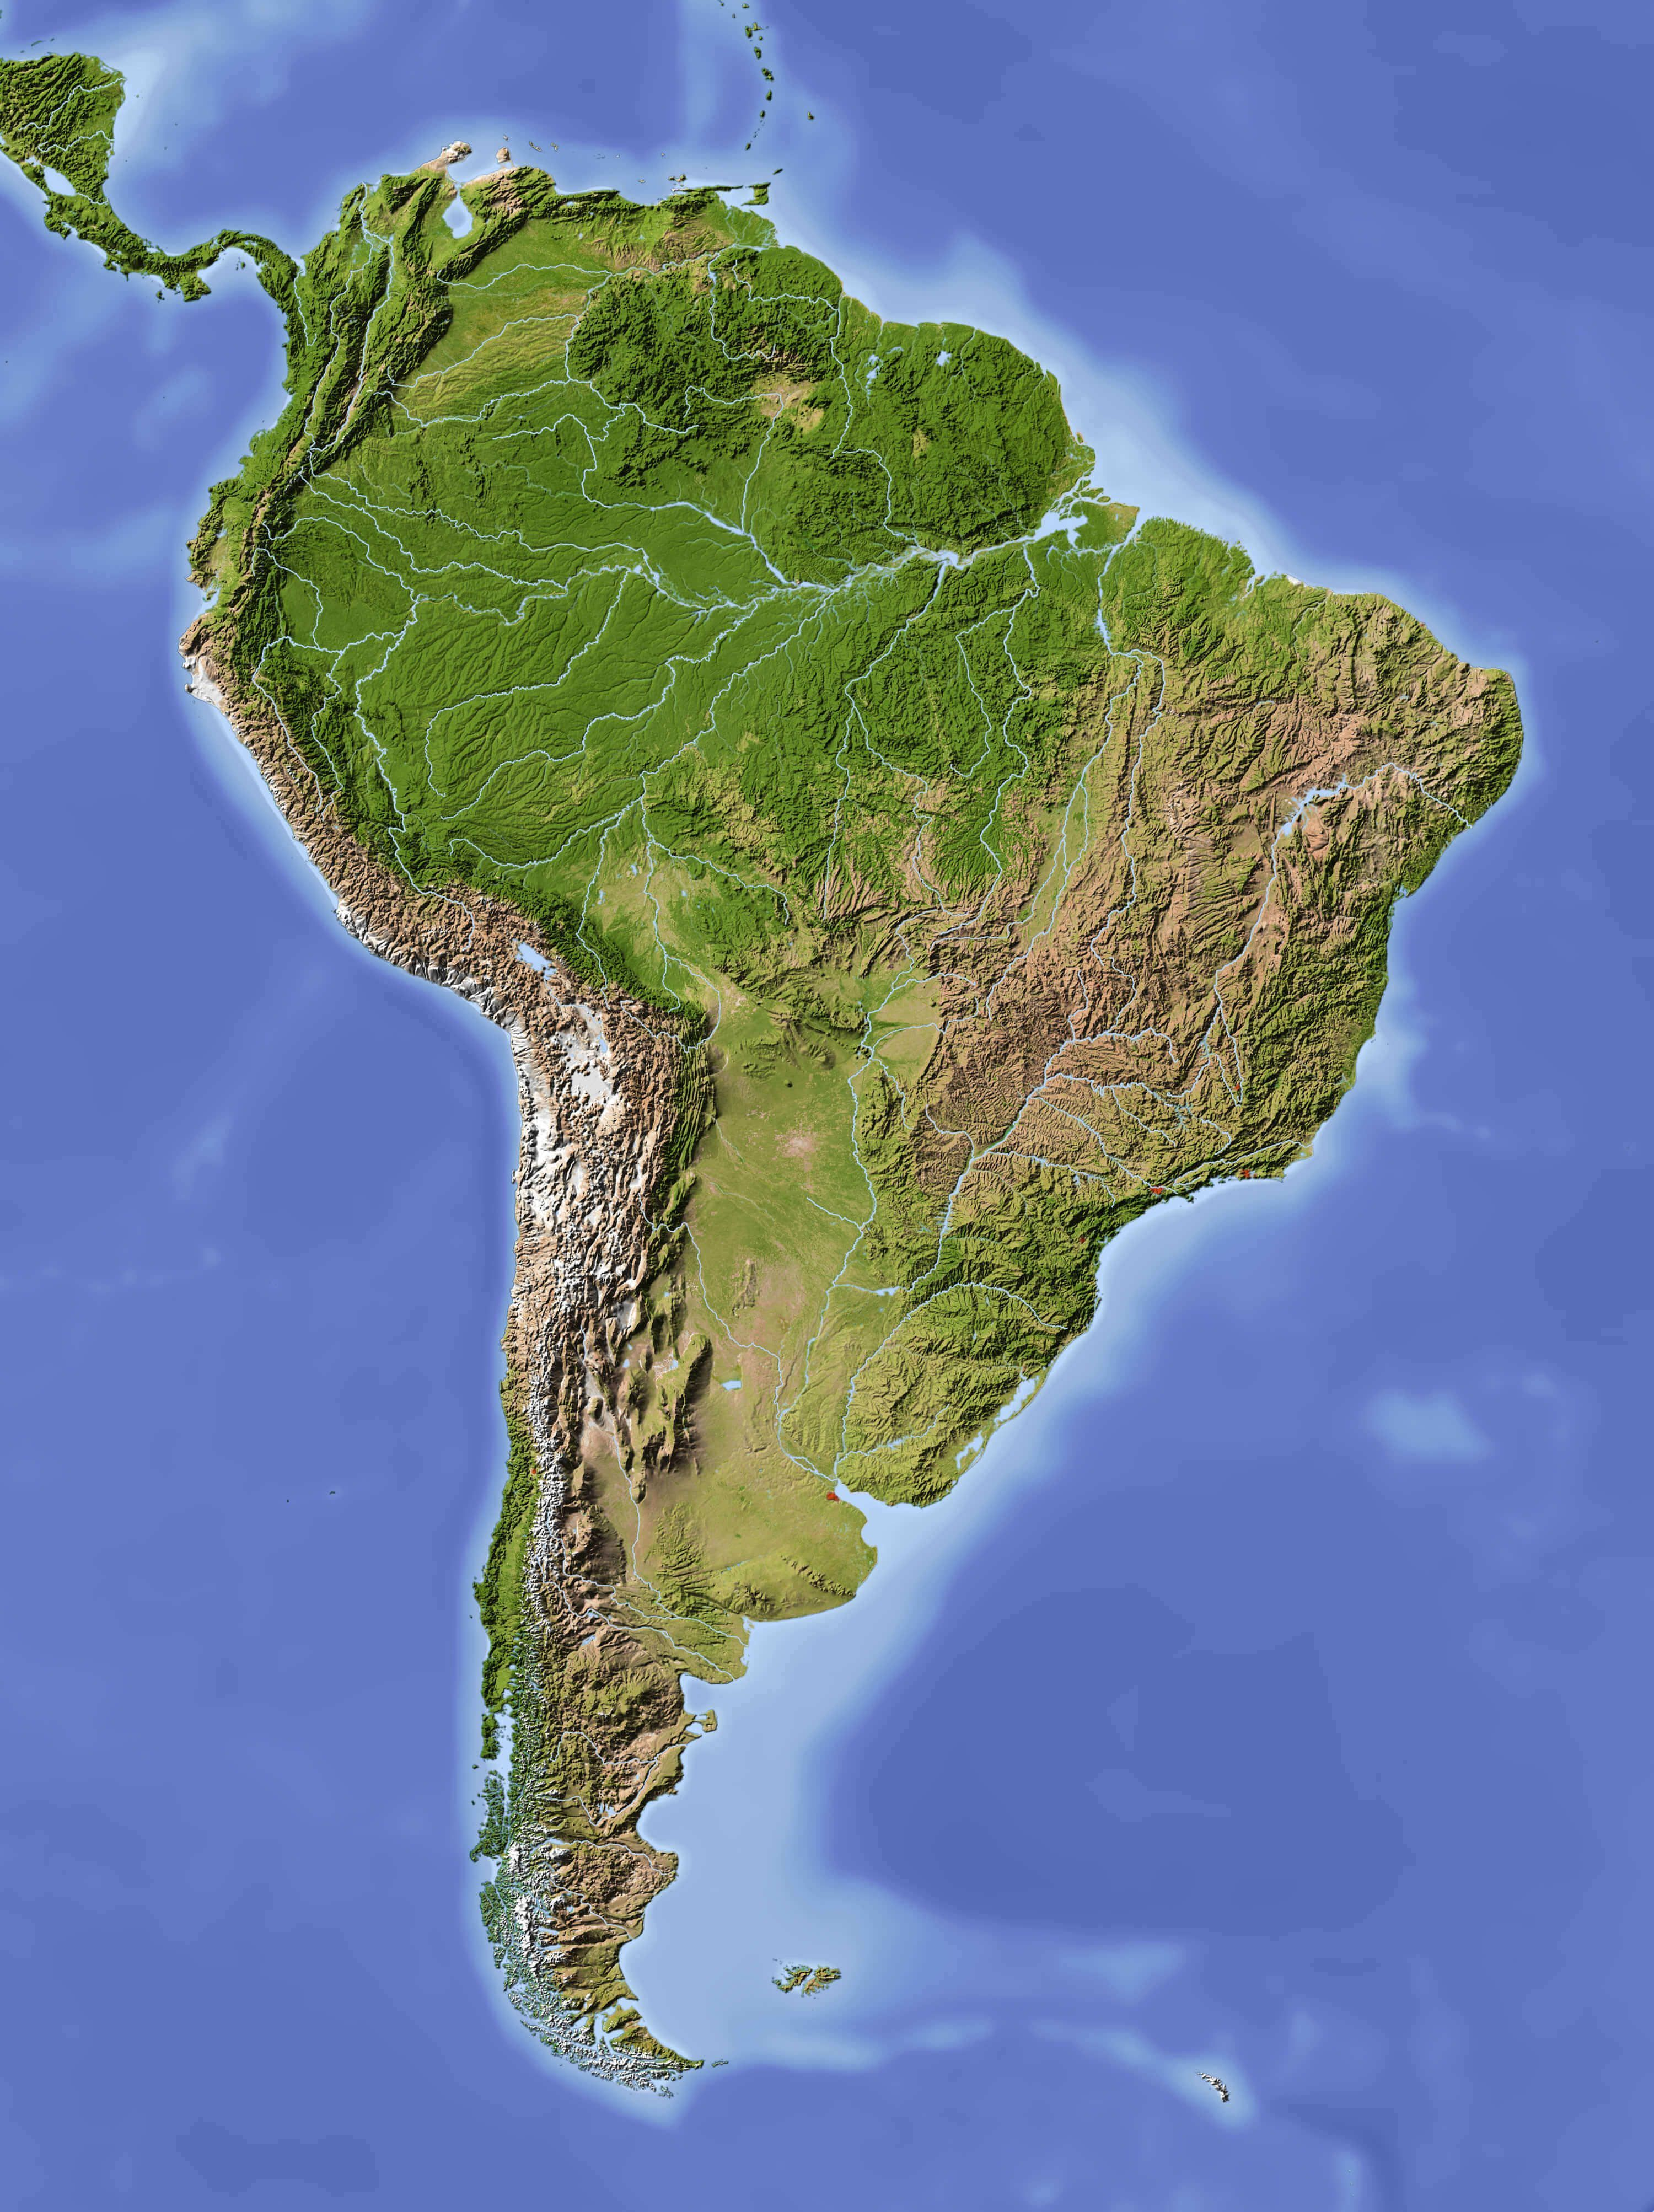 Yutacan Peninsula Map Of Latin America Physical Features on